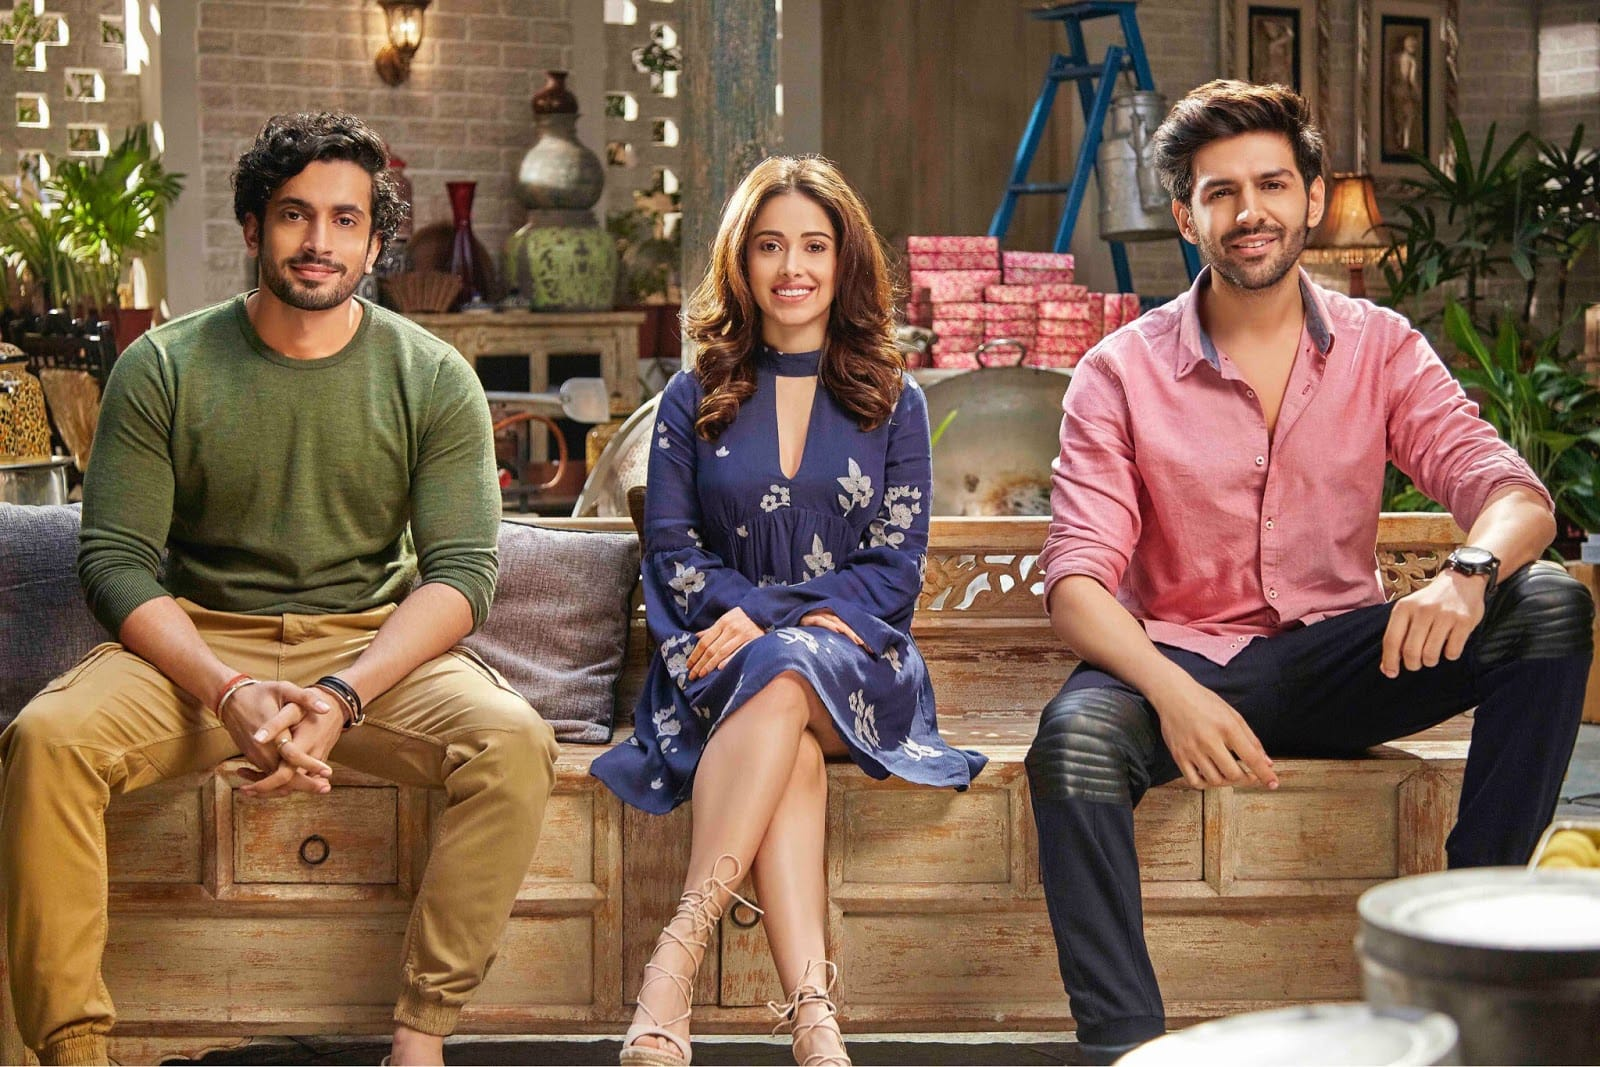 Sunny Singh on Pyaar Ka Punchnama co-star Kartik Aaryan: Our friendship and bonding is exactly like school friends